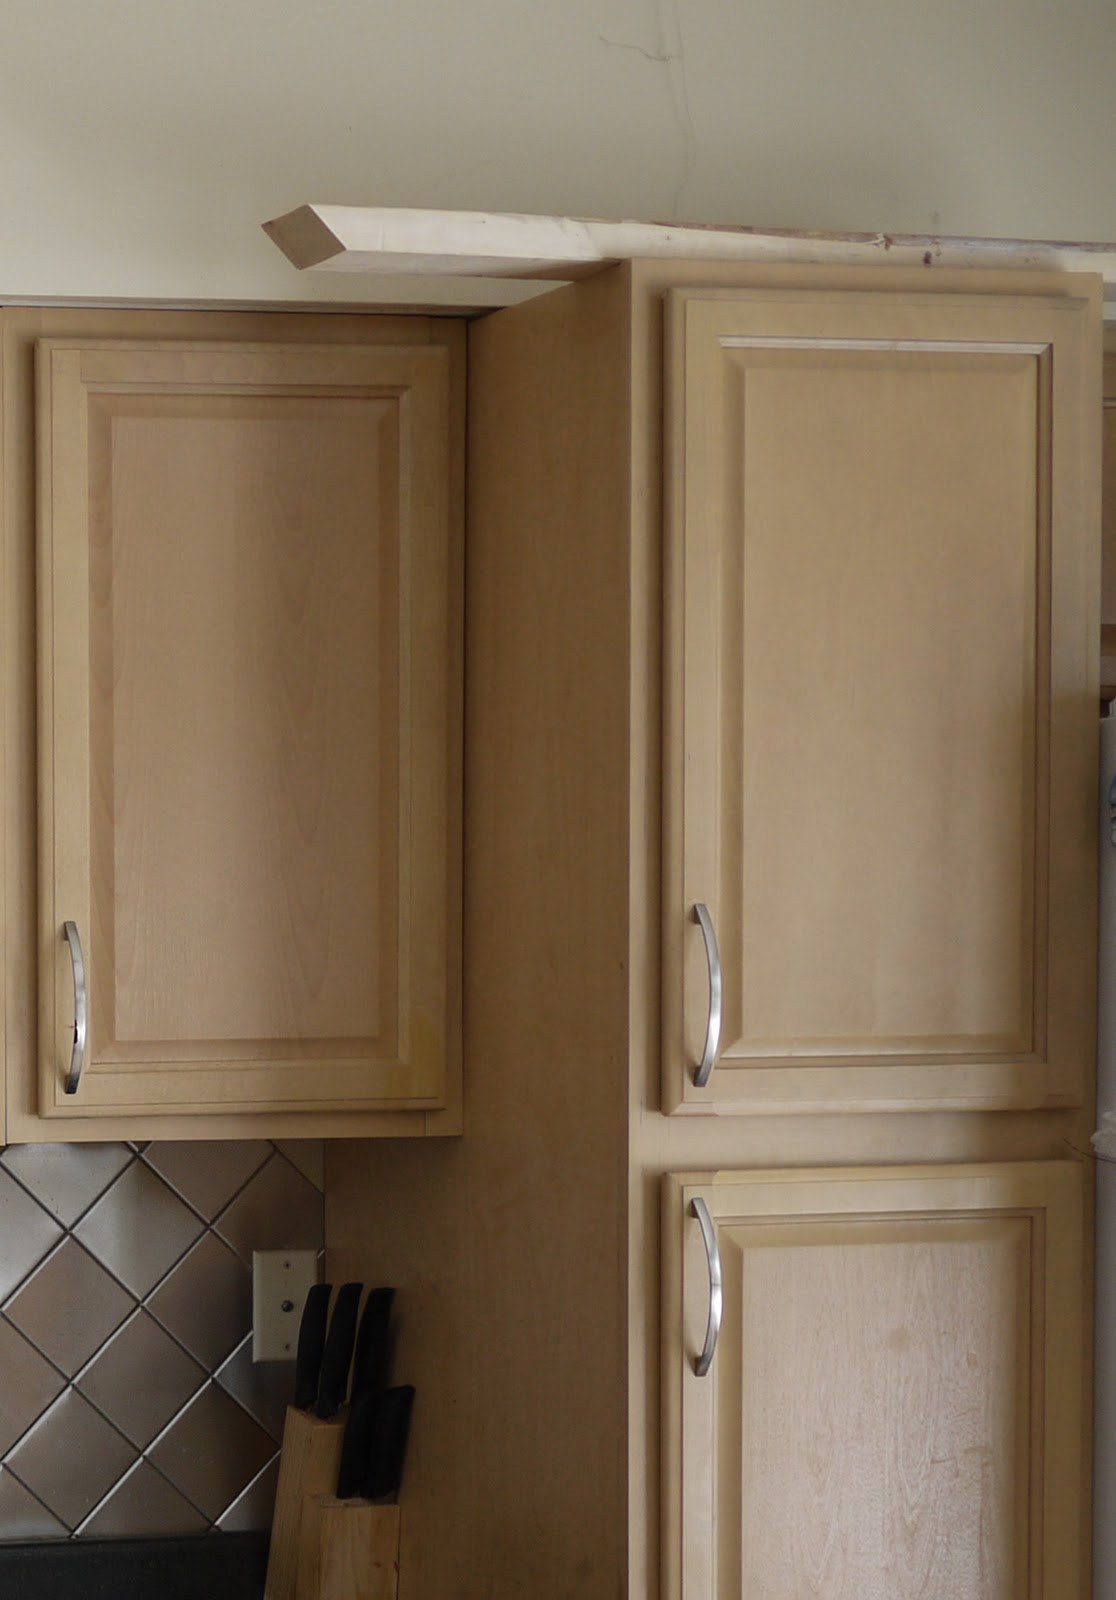 Lowe's White Utility Cabinets Kitchen